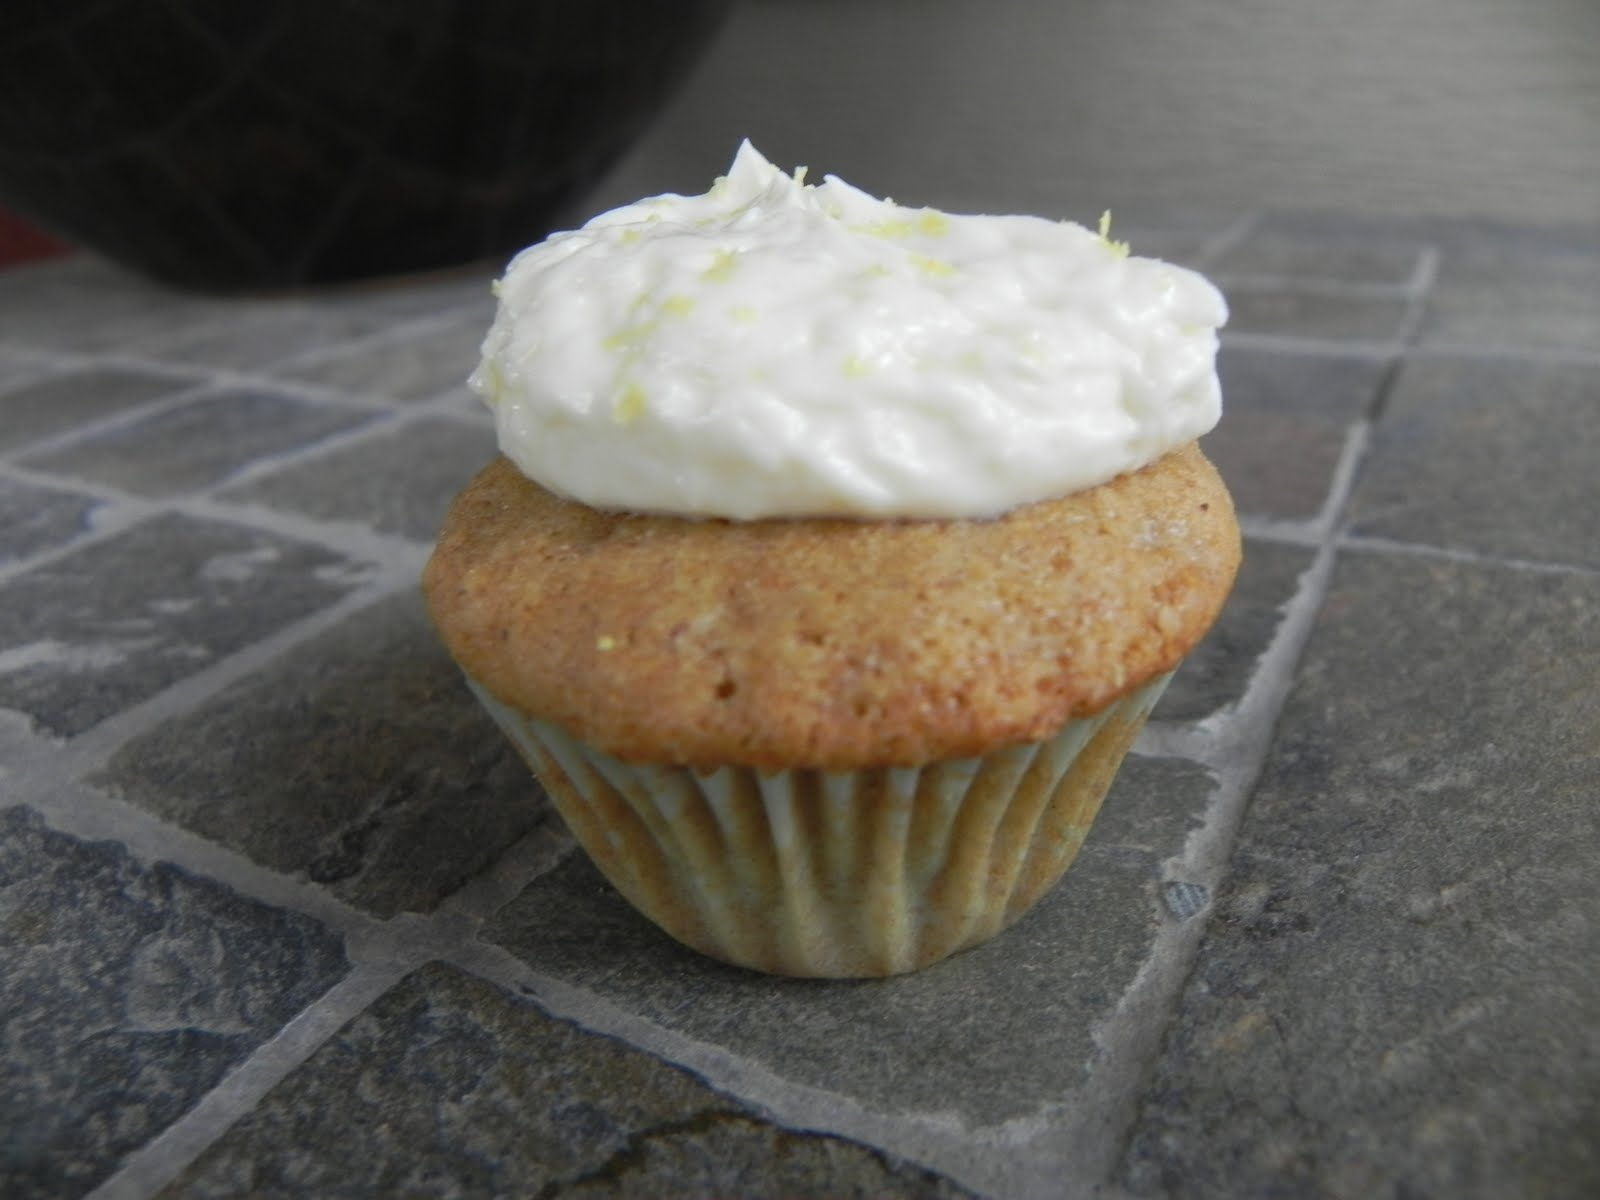 ... At Home: Mini Spiced Ginger Cupcakes with Lemon Cream Cheese Frosting